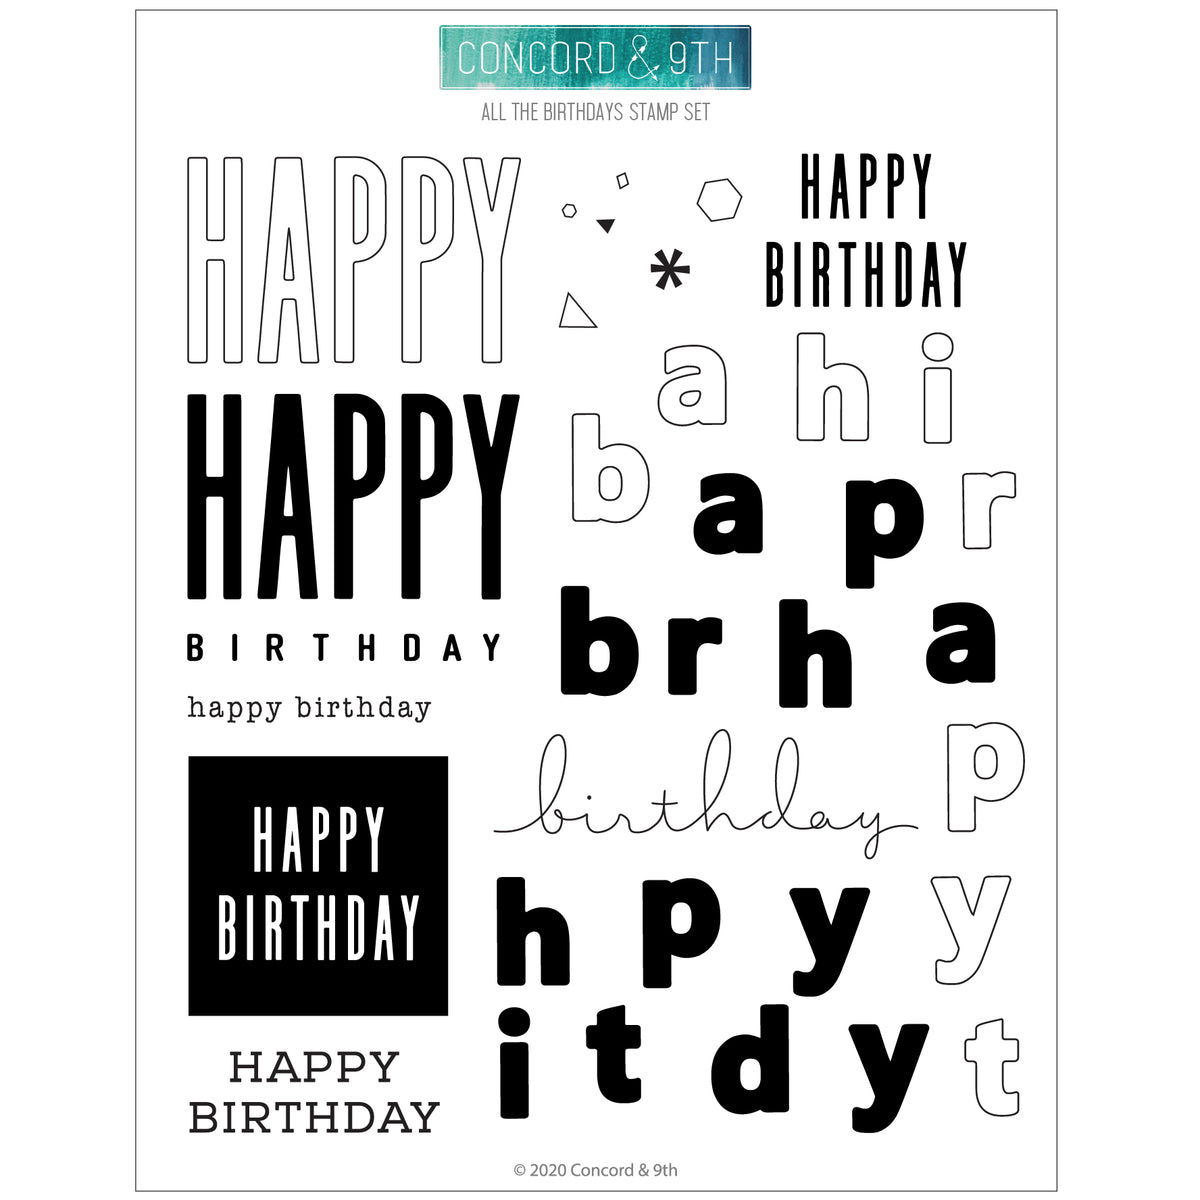 All the Birthdays Stamp Set